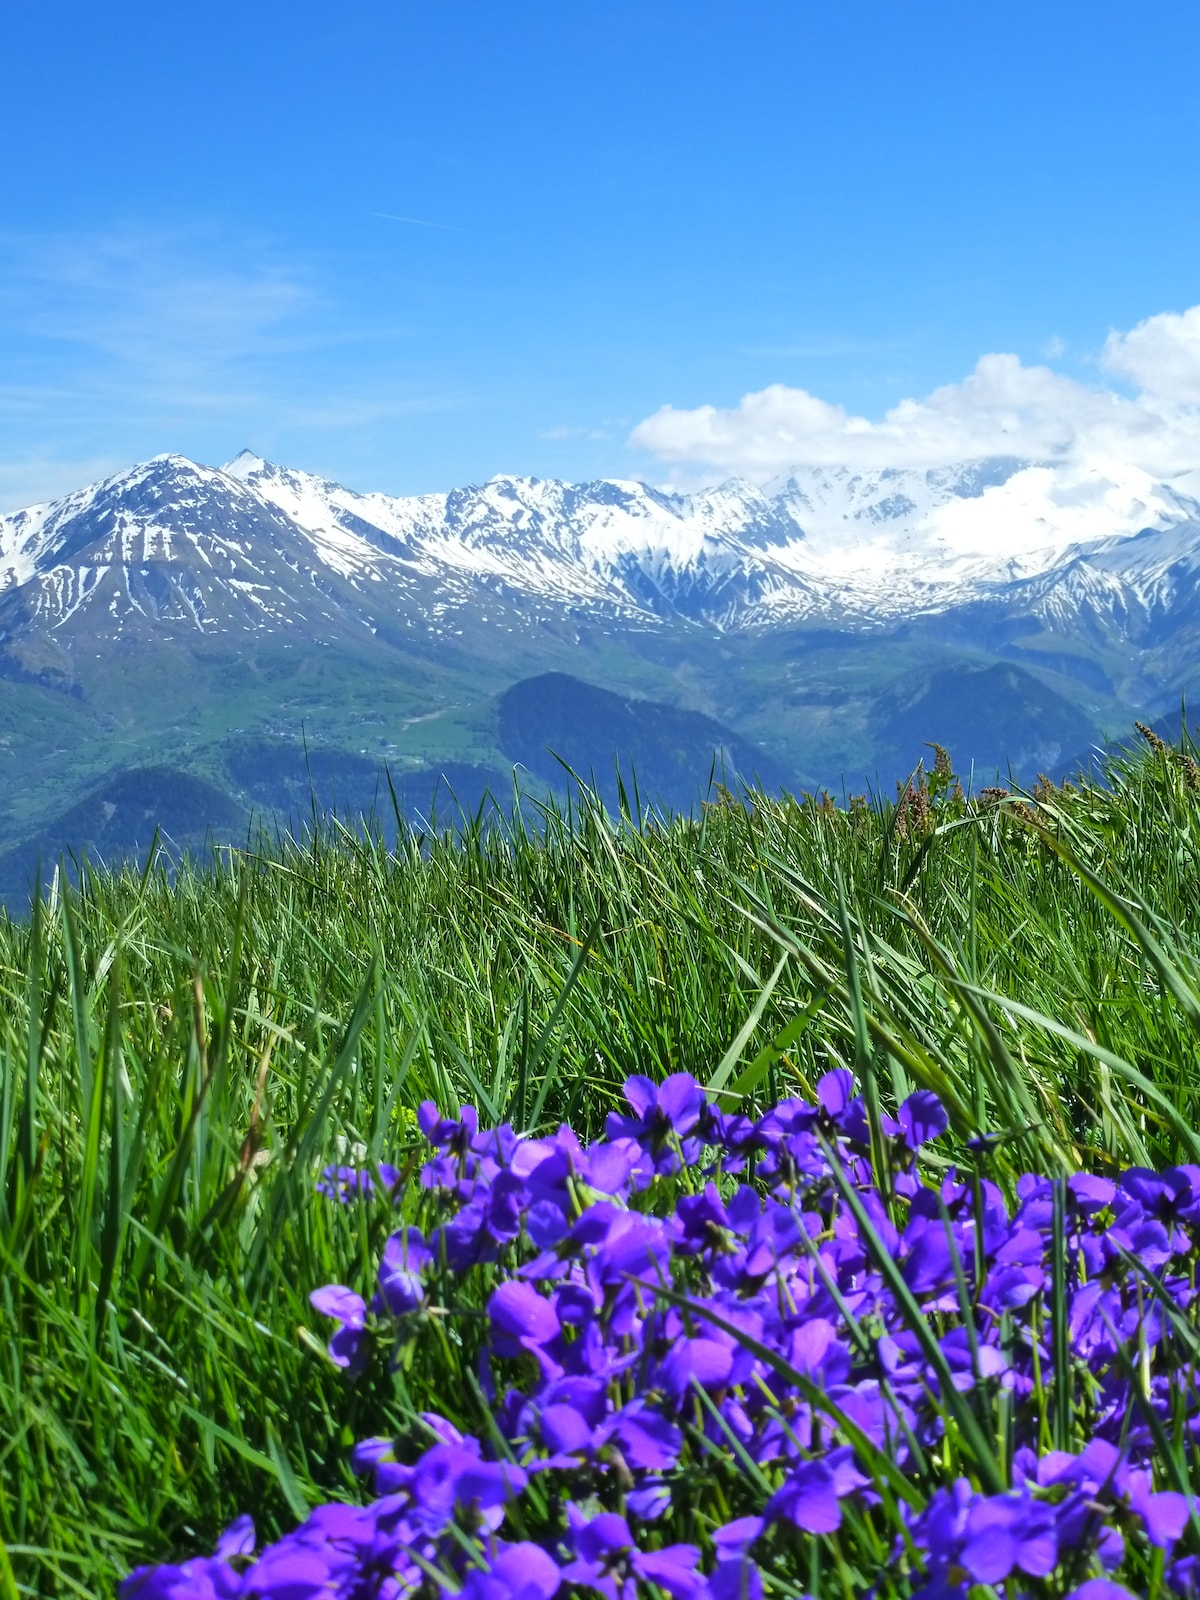 Maurienne valley by bike or foot